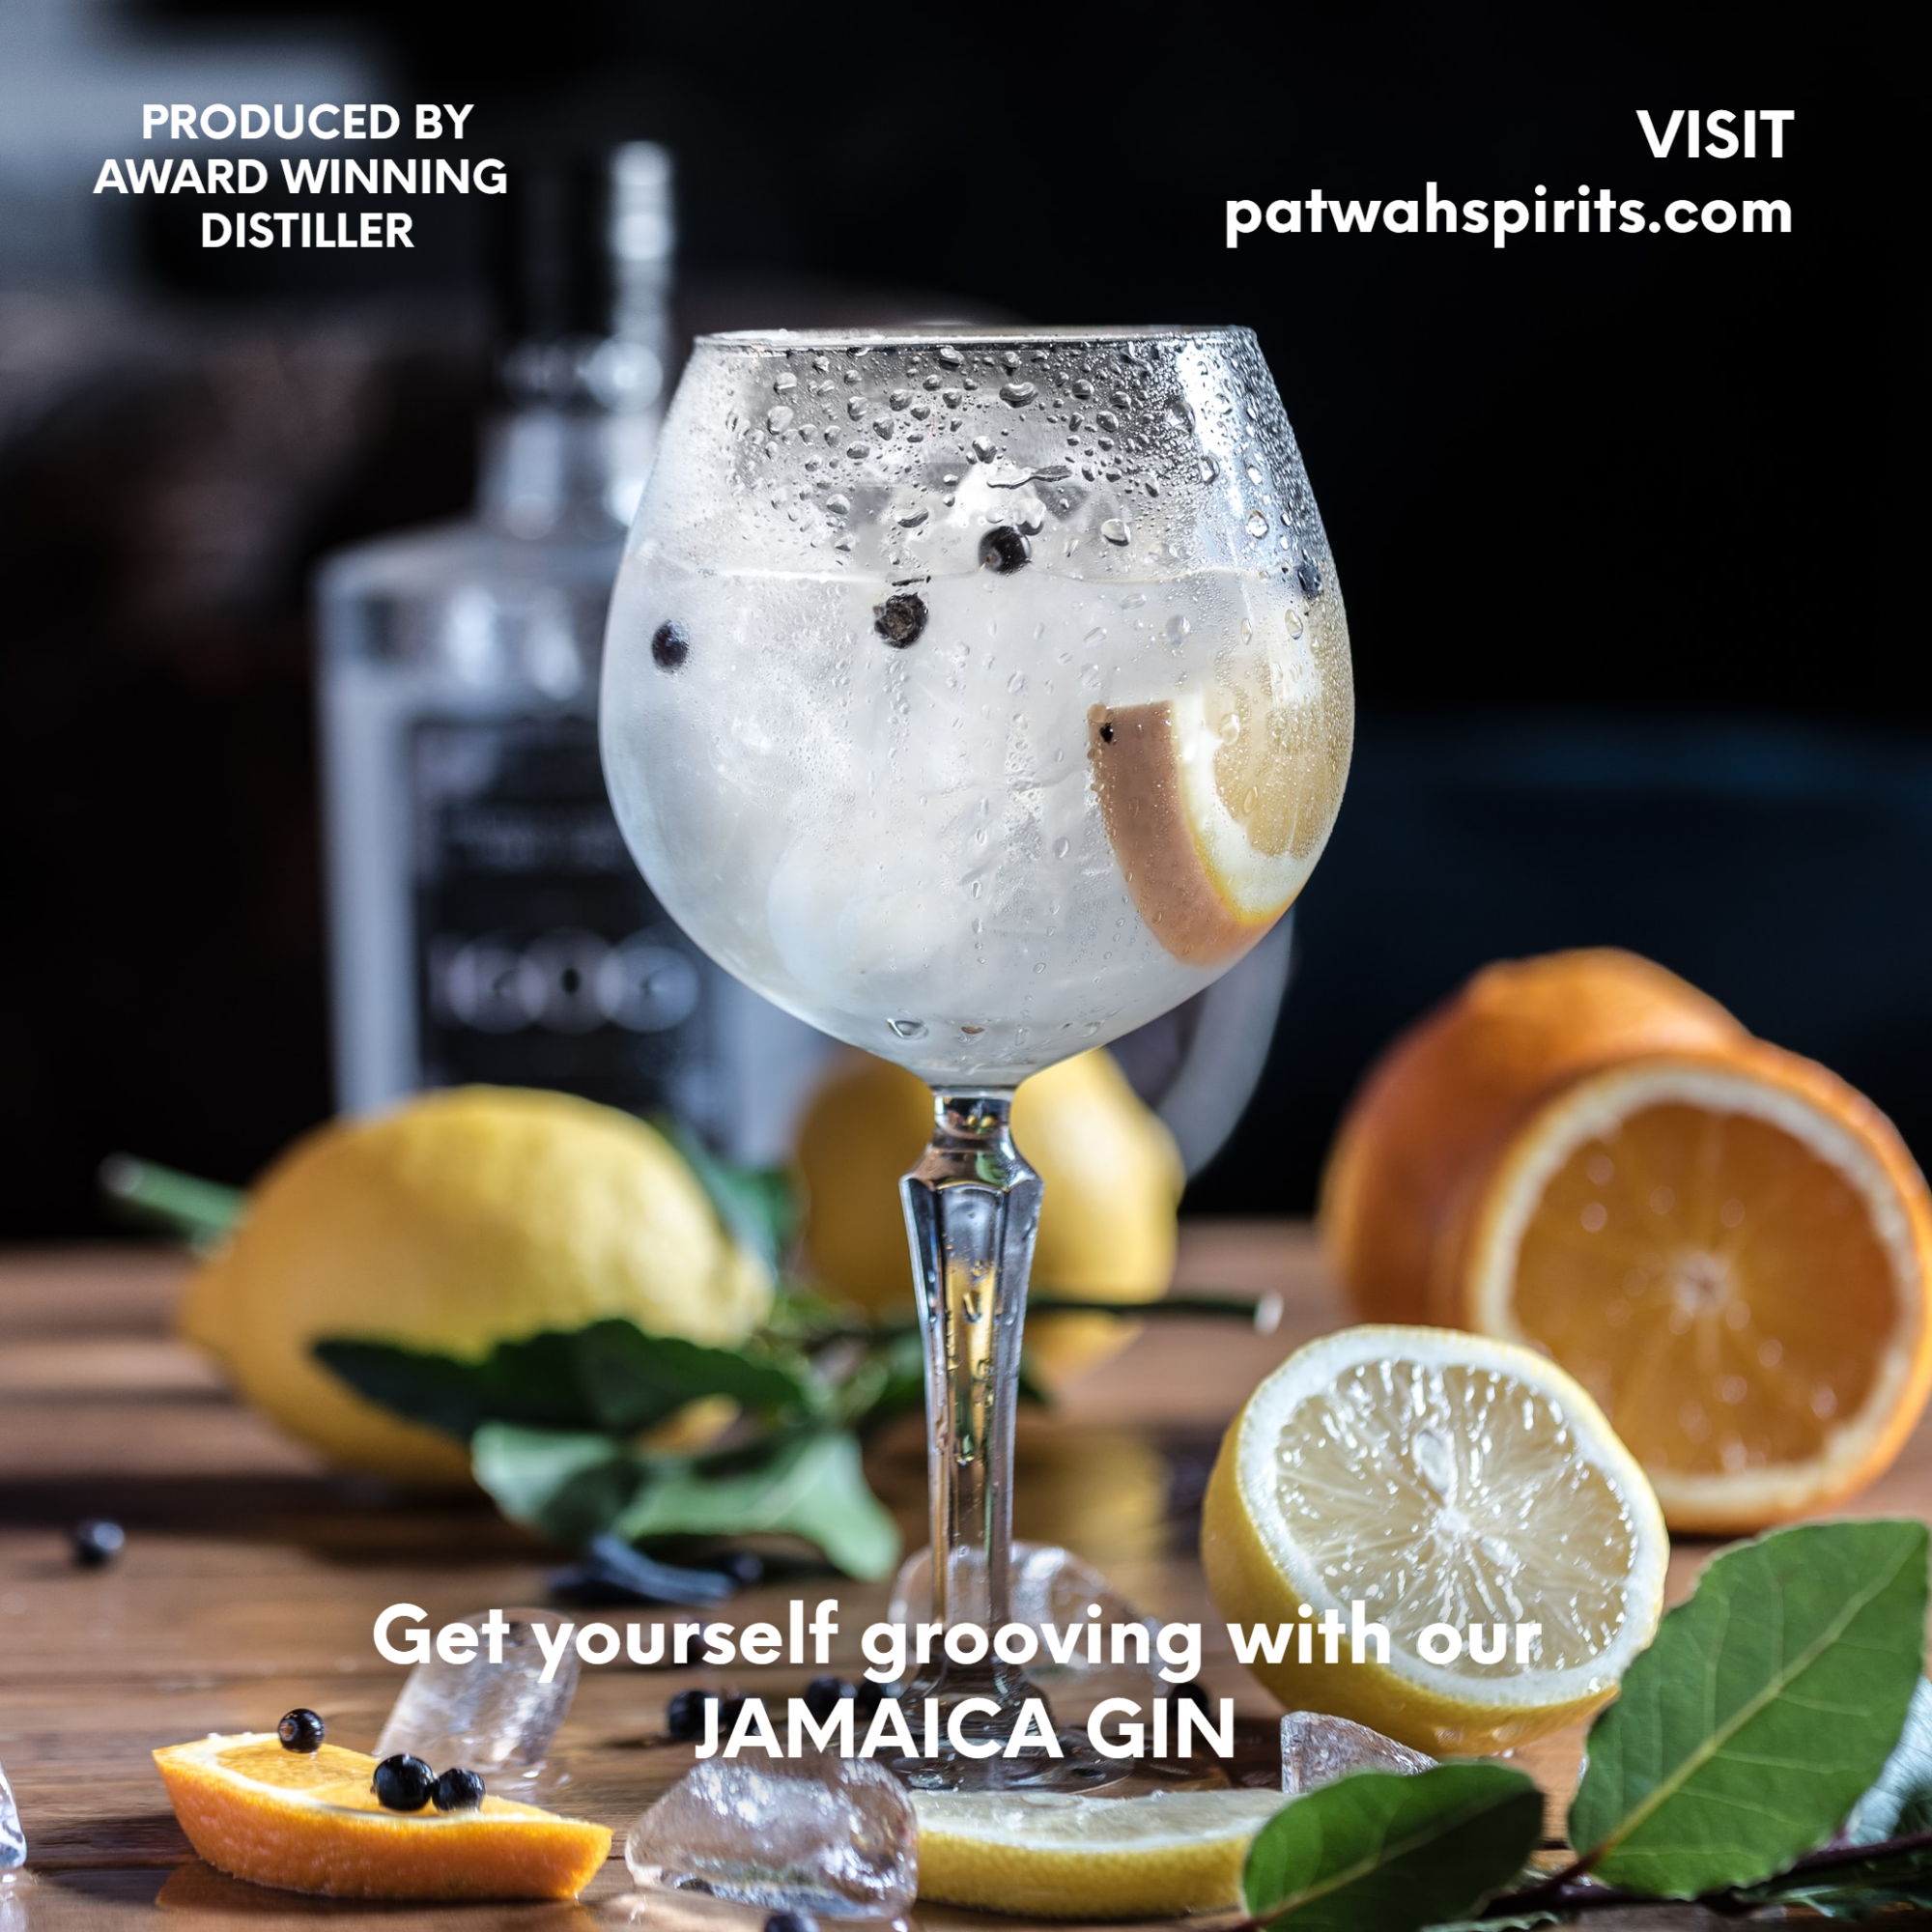 Glass of Sparkling Gin advert